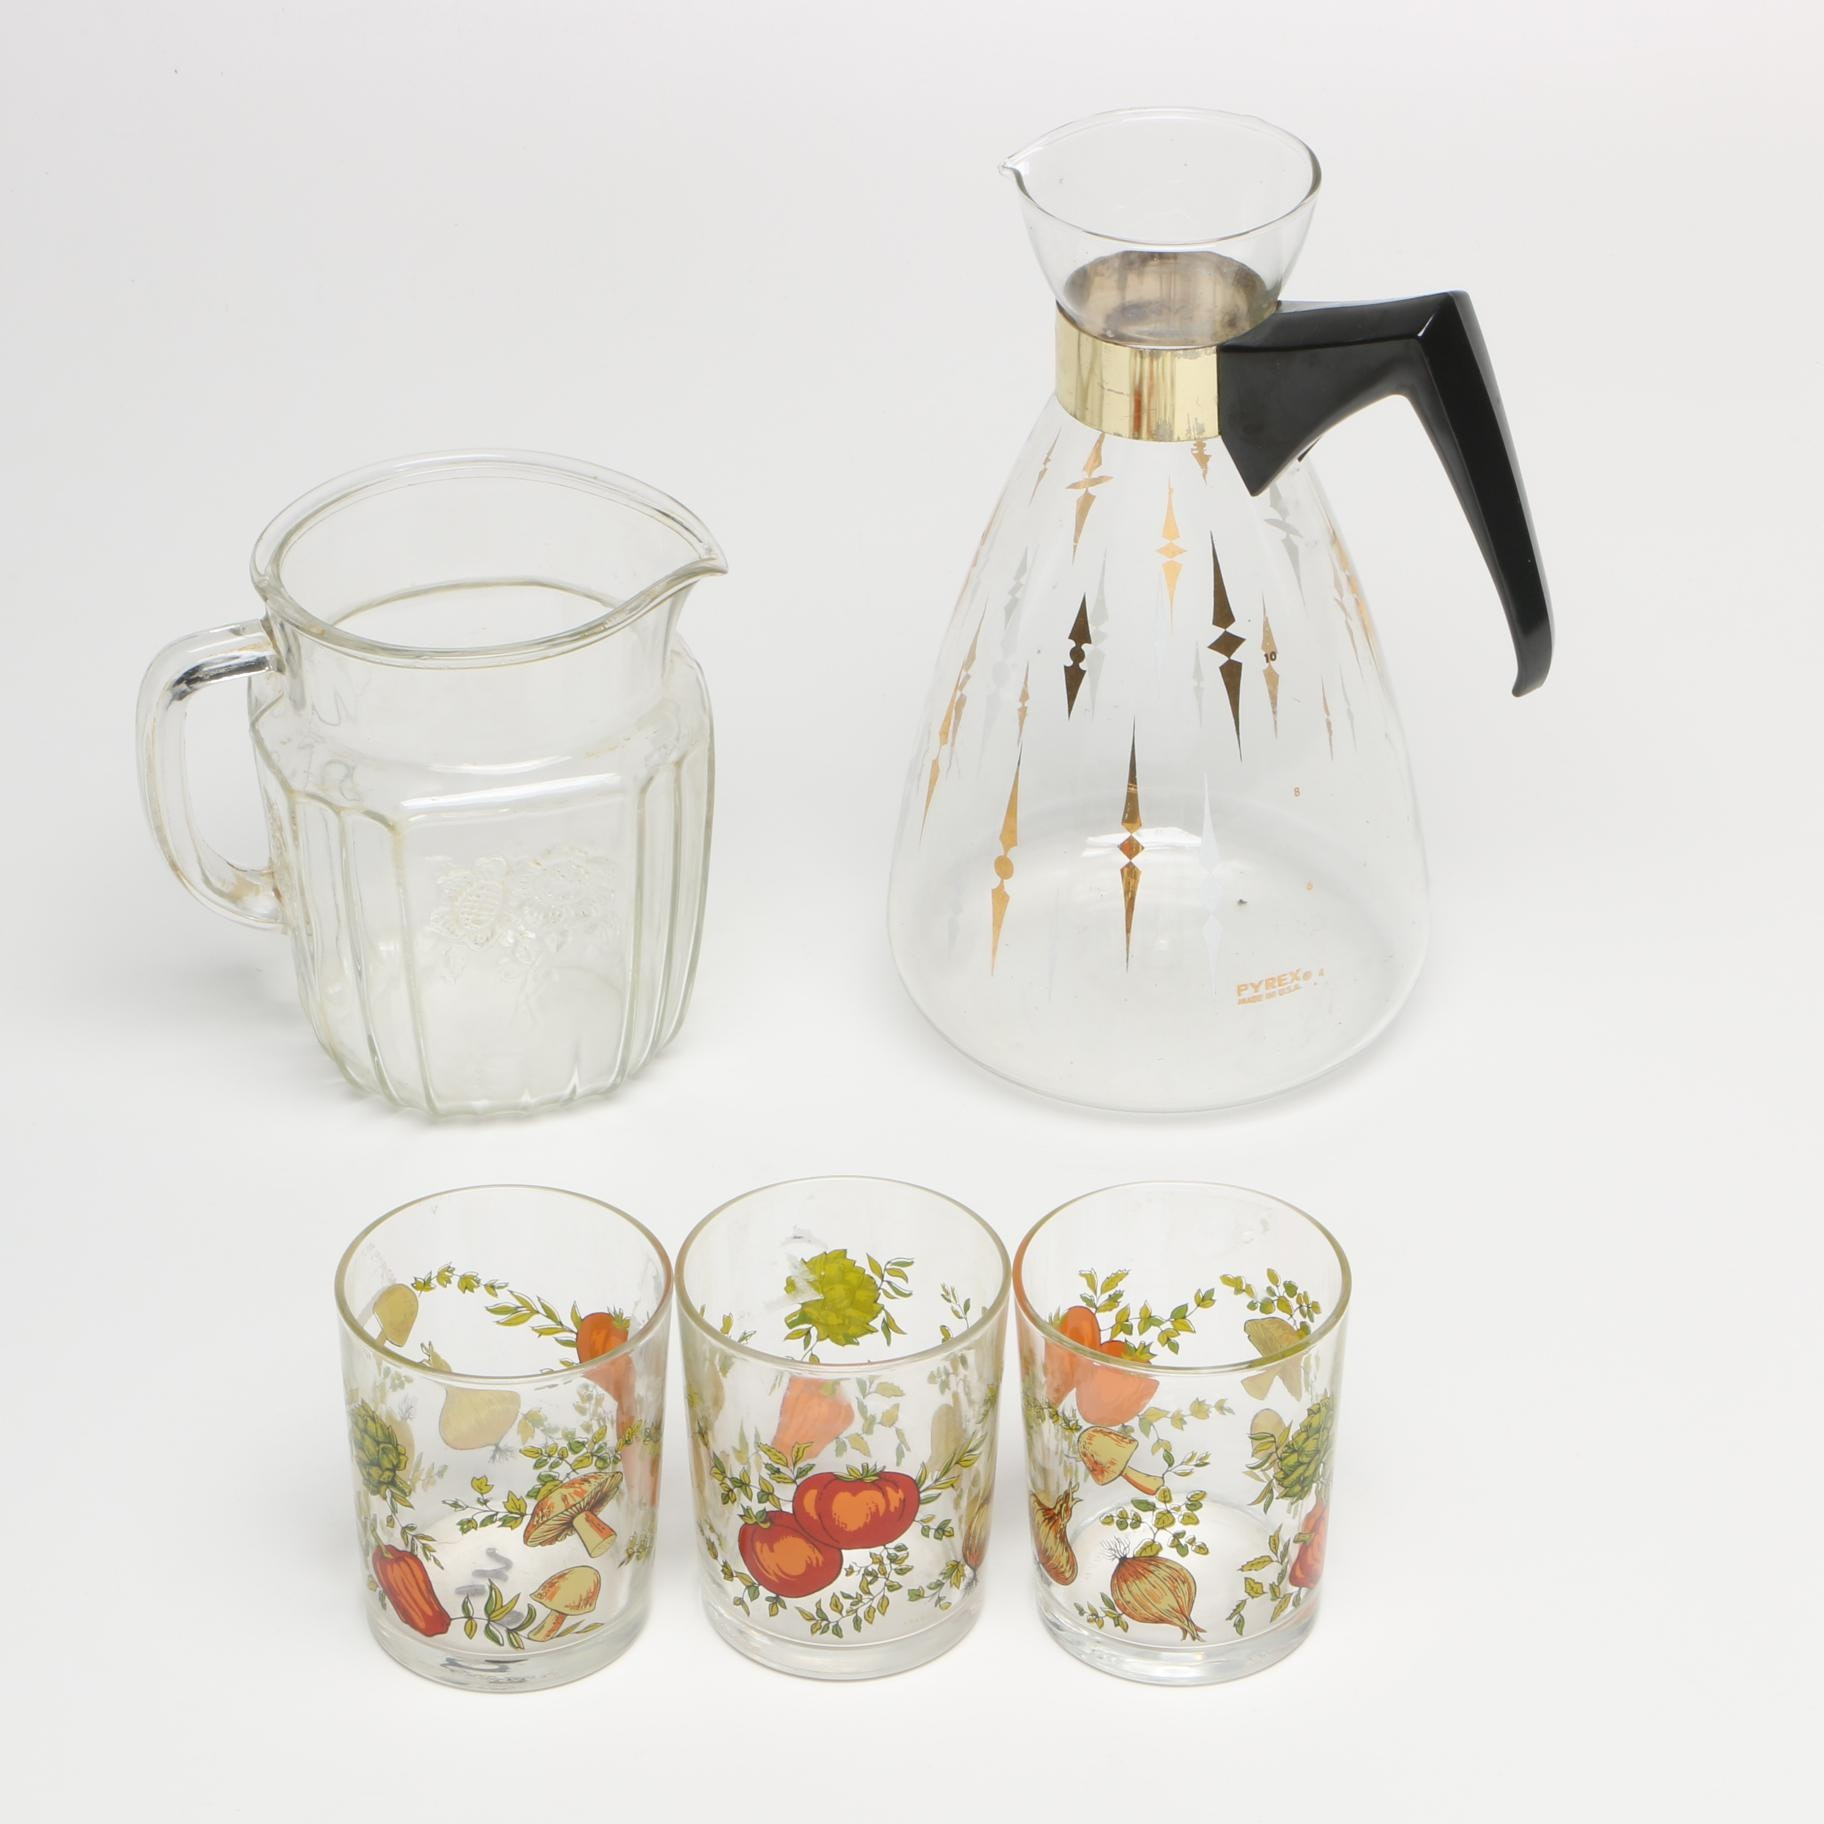 Vintage Pyrex Coffee Decanter and Other Glass Tableware